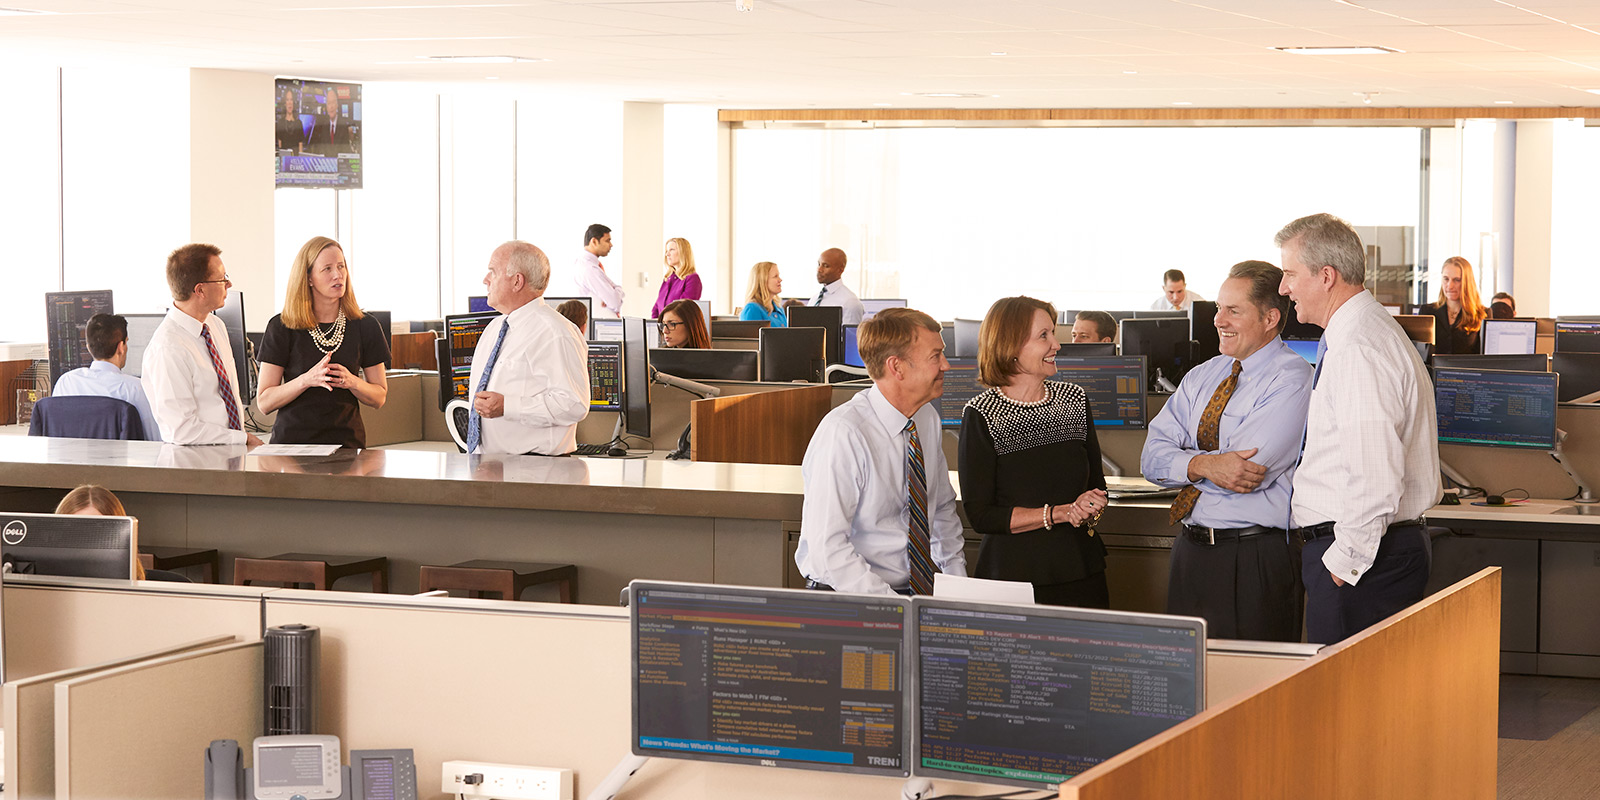 Photo of Baird Asset Management trading floor